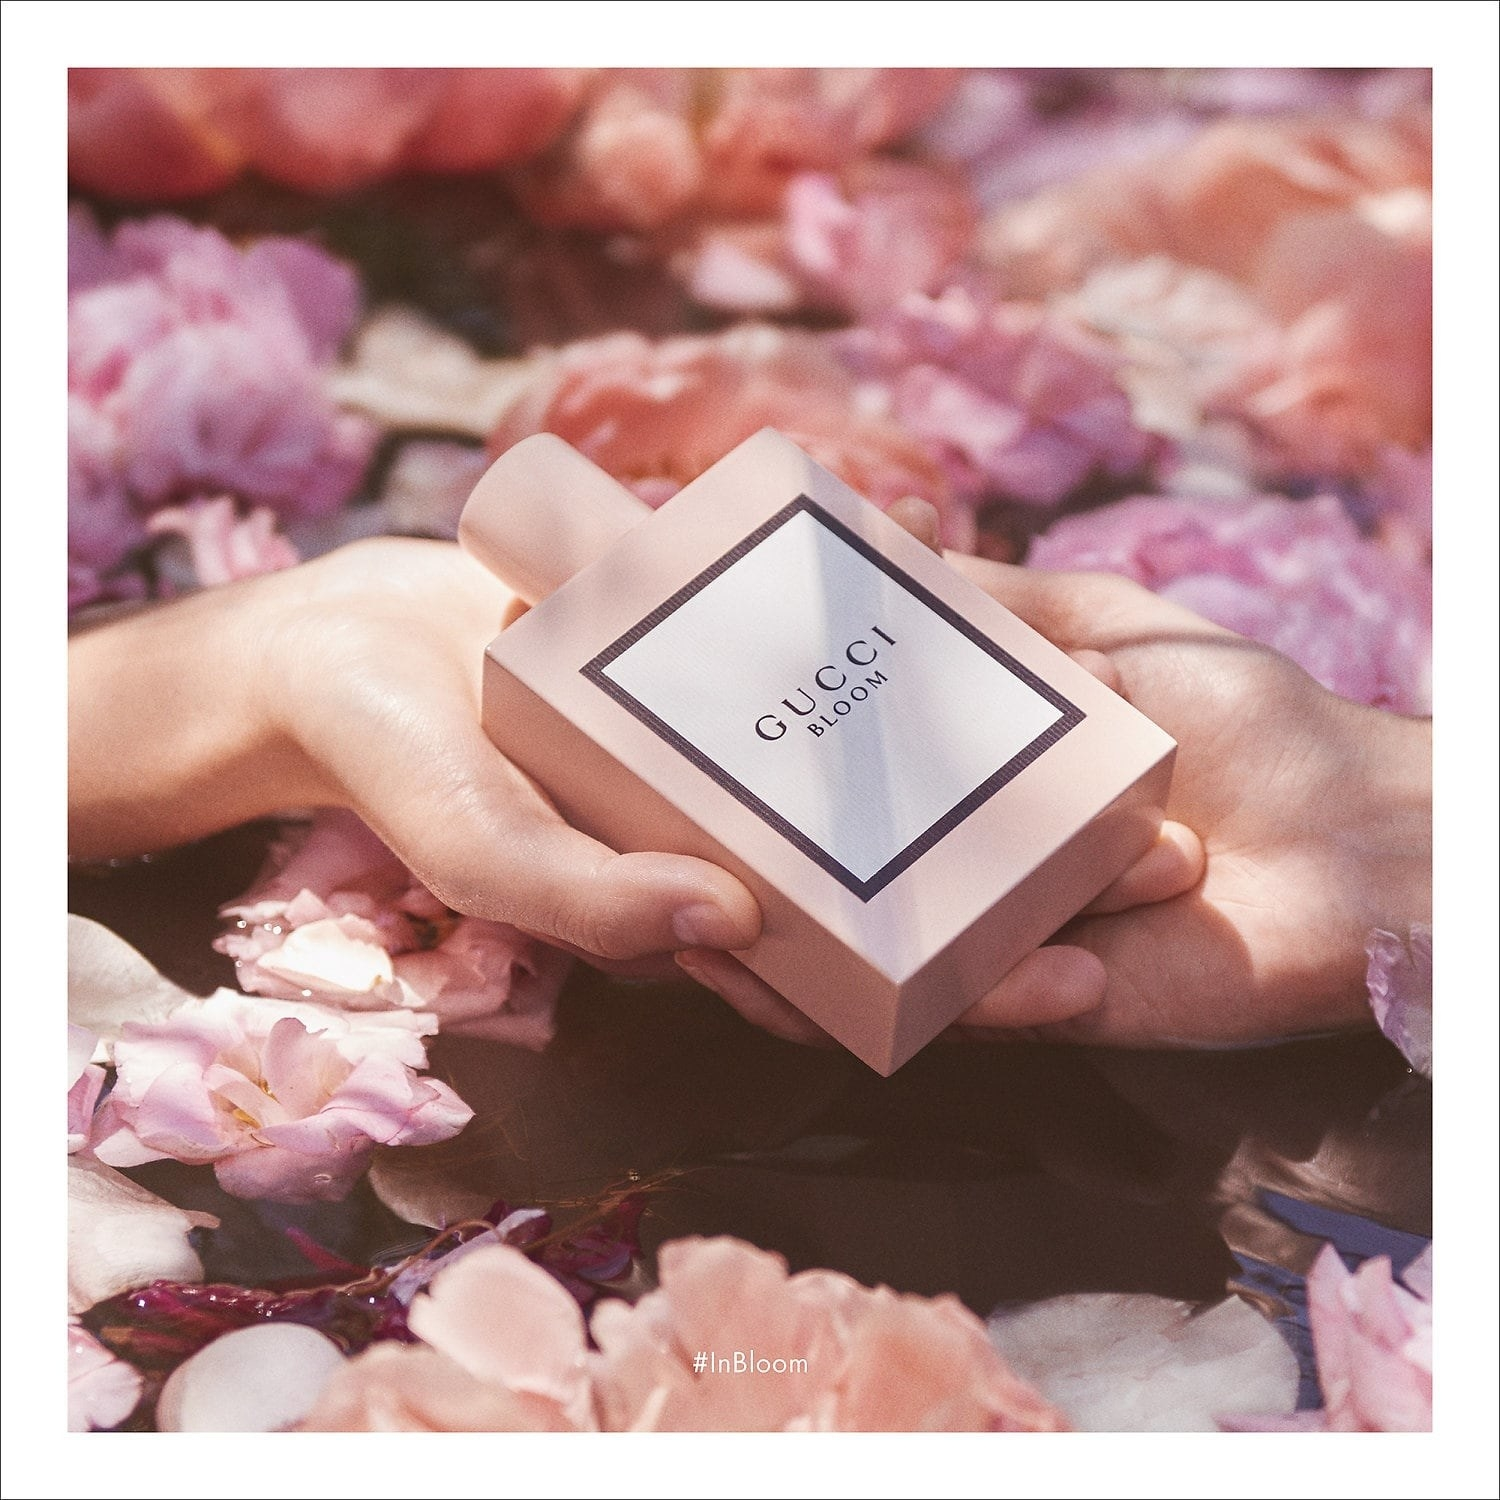 Hands holding the pink square bottle of perfume